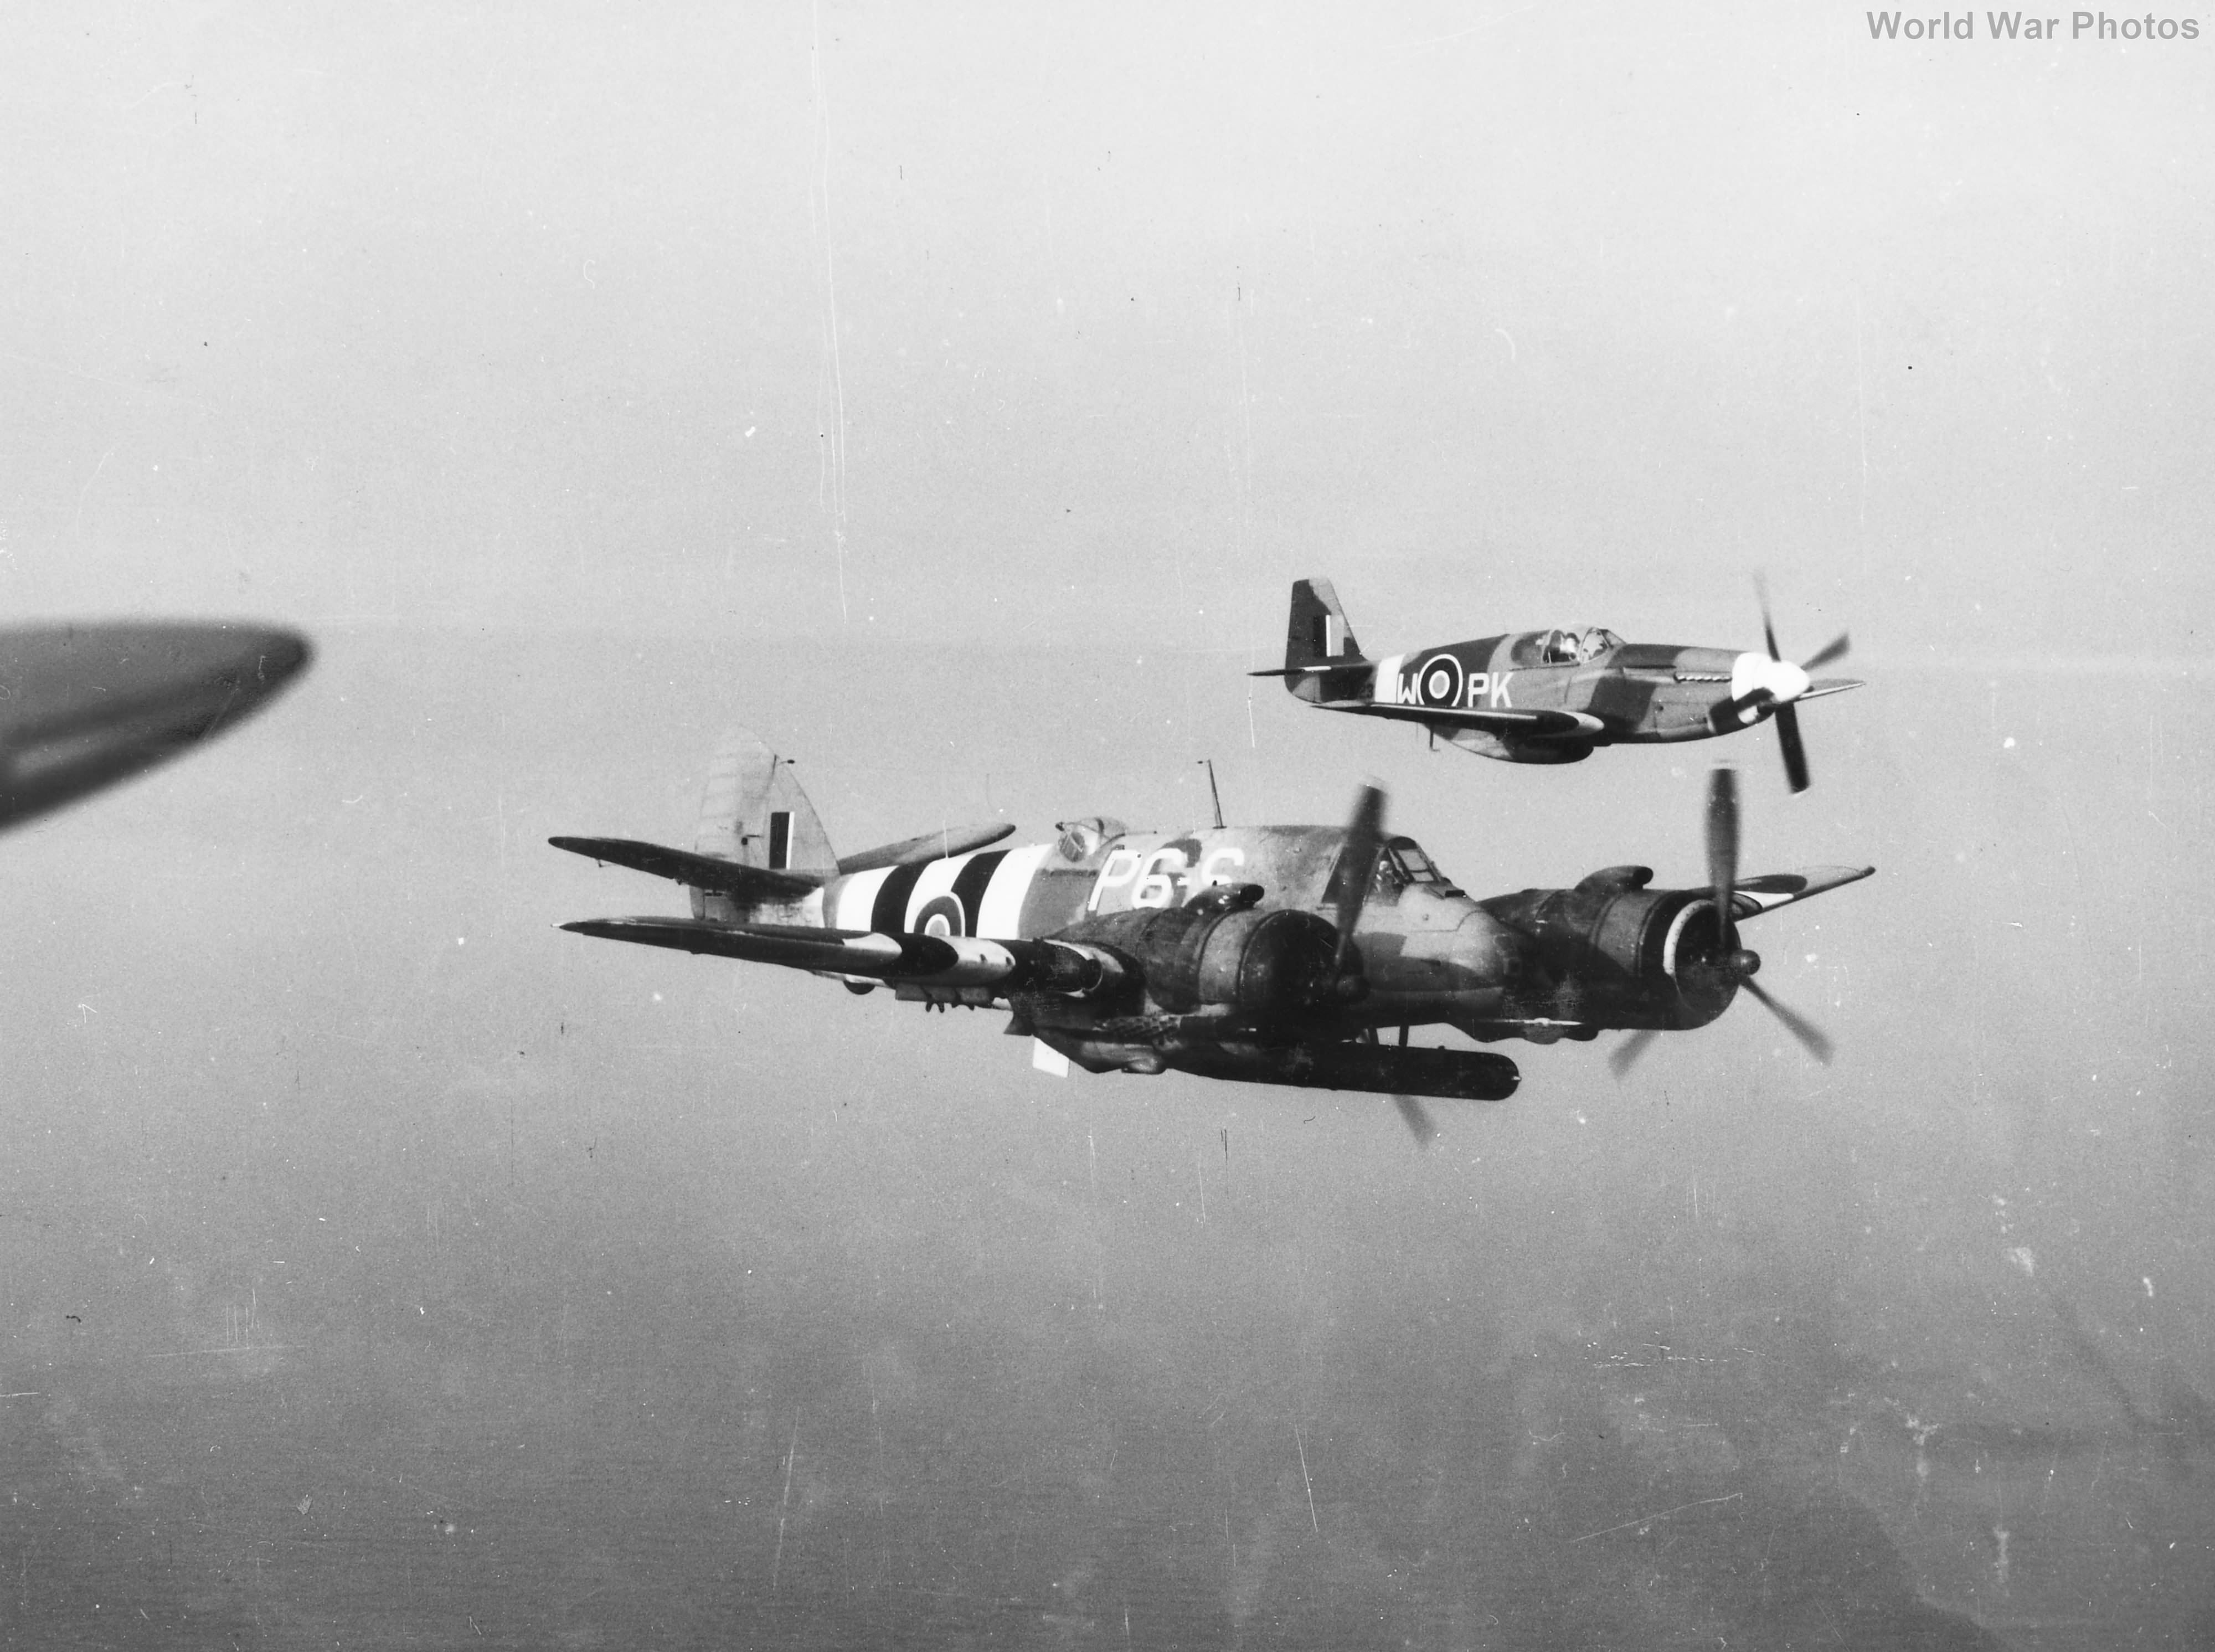 Polish P-51 Mustang and Beaufighter